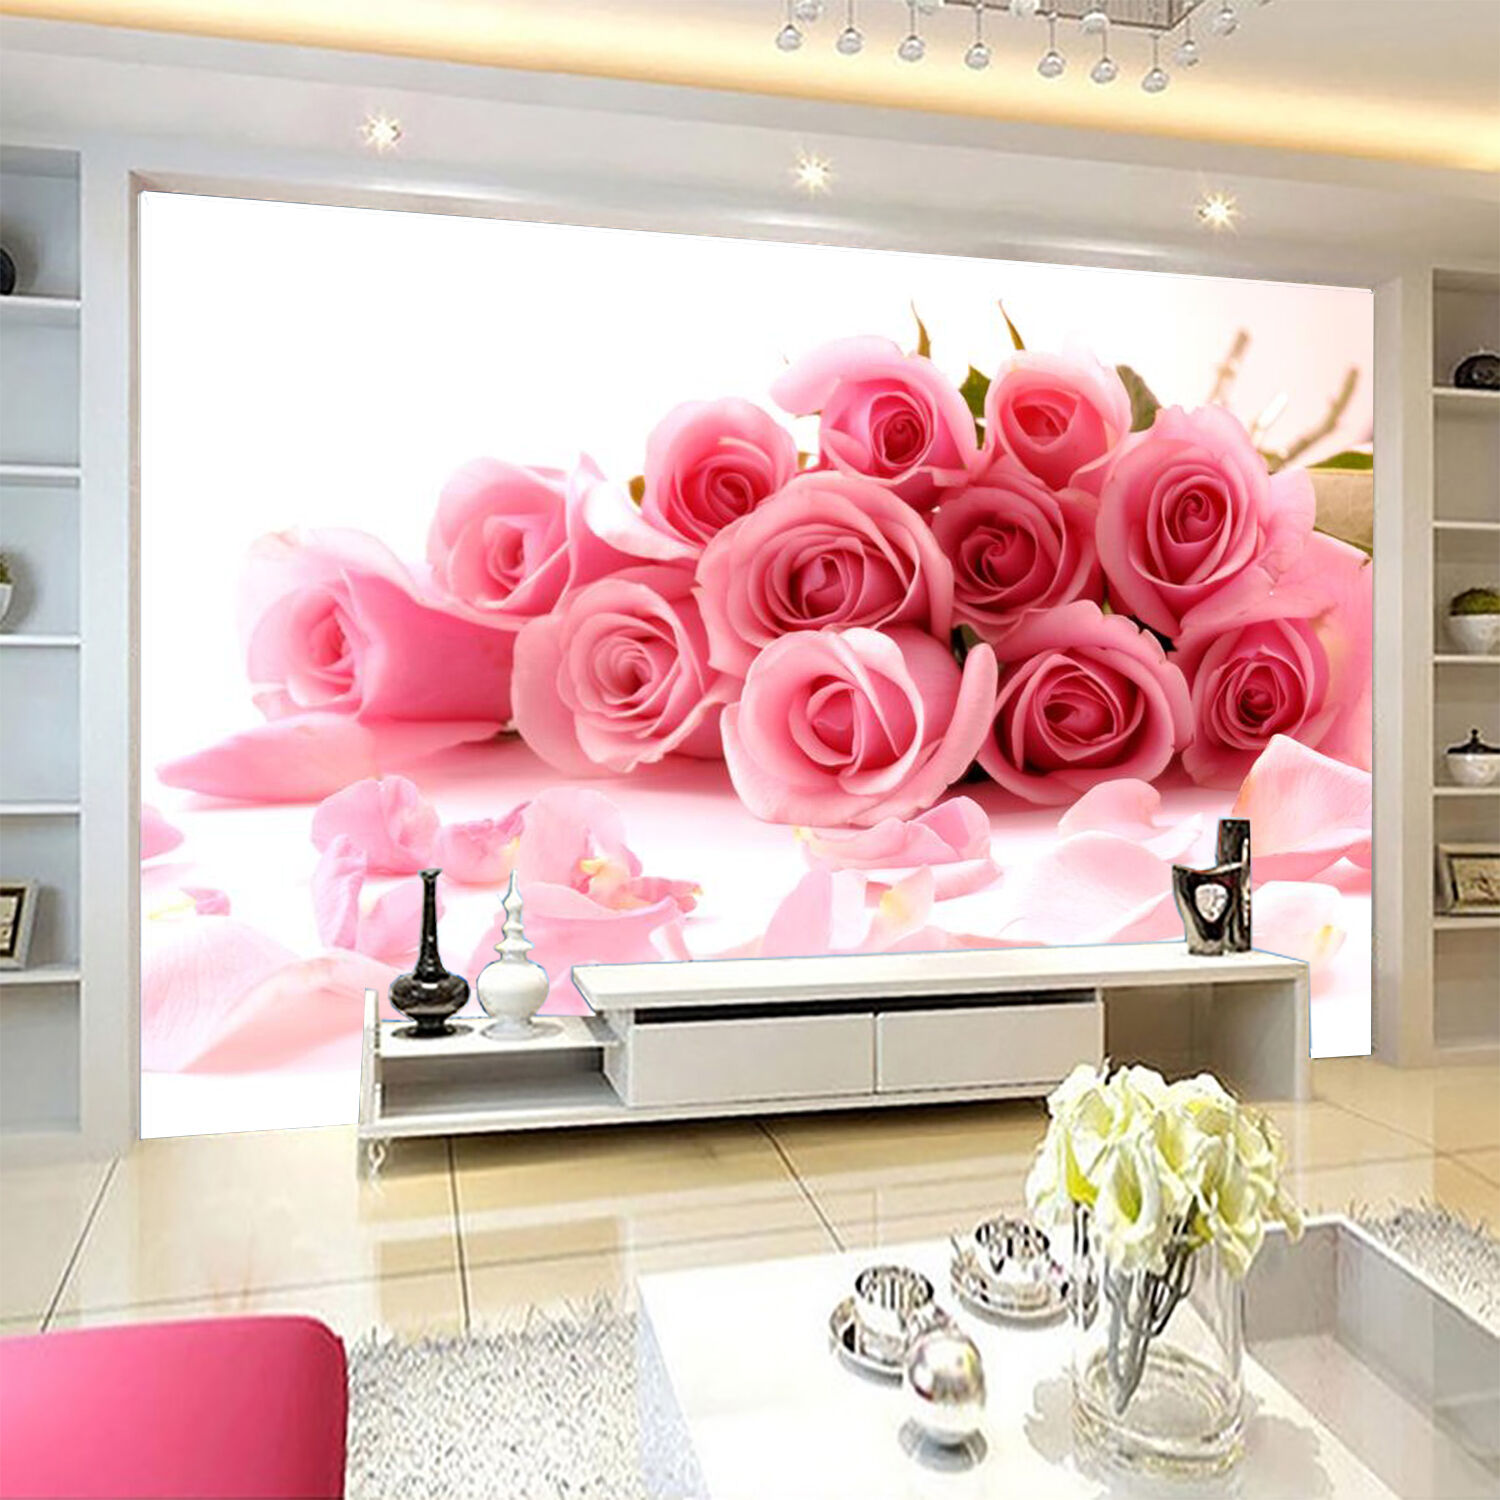 3D Pretty pinks Flowers 249 Wallpaper Decal Dercor Home Kids Nursery Mural Home